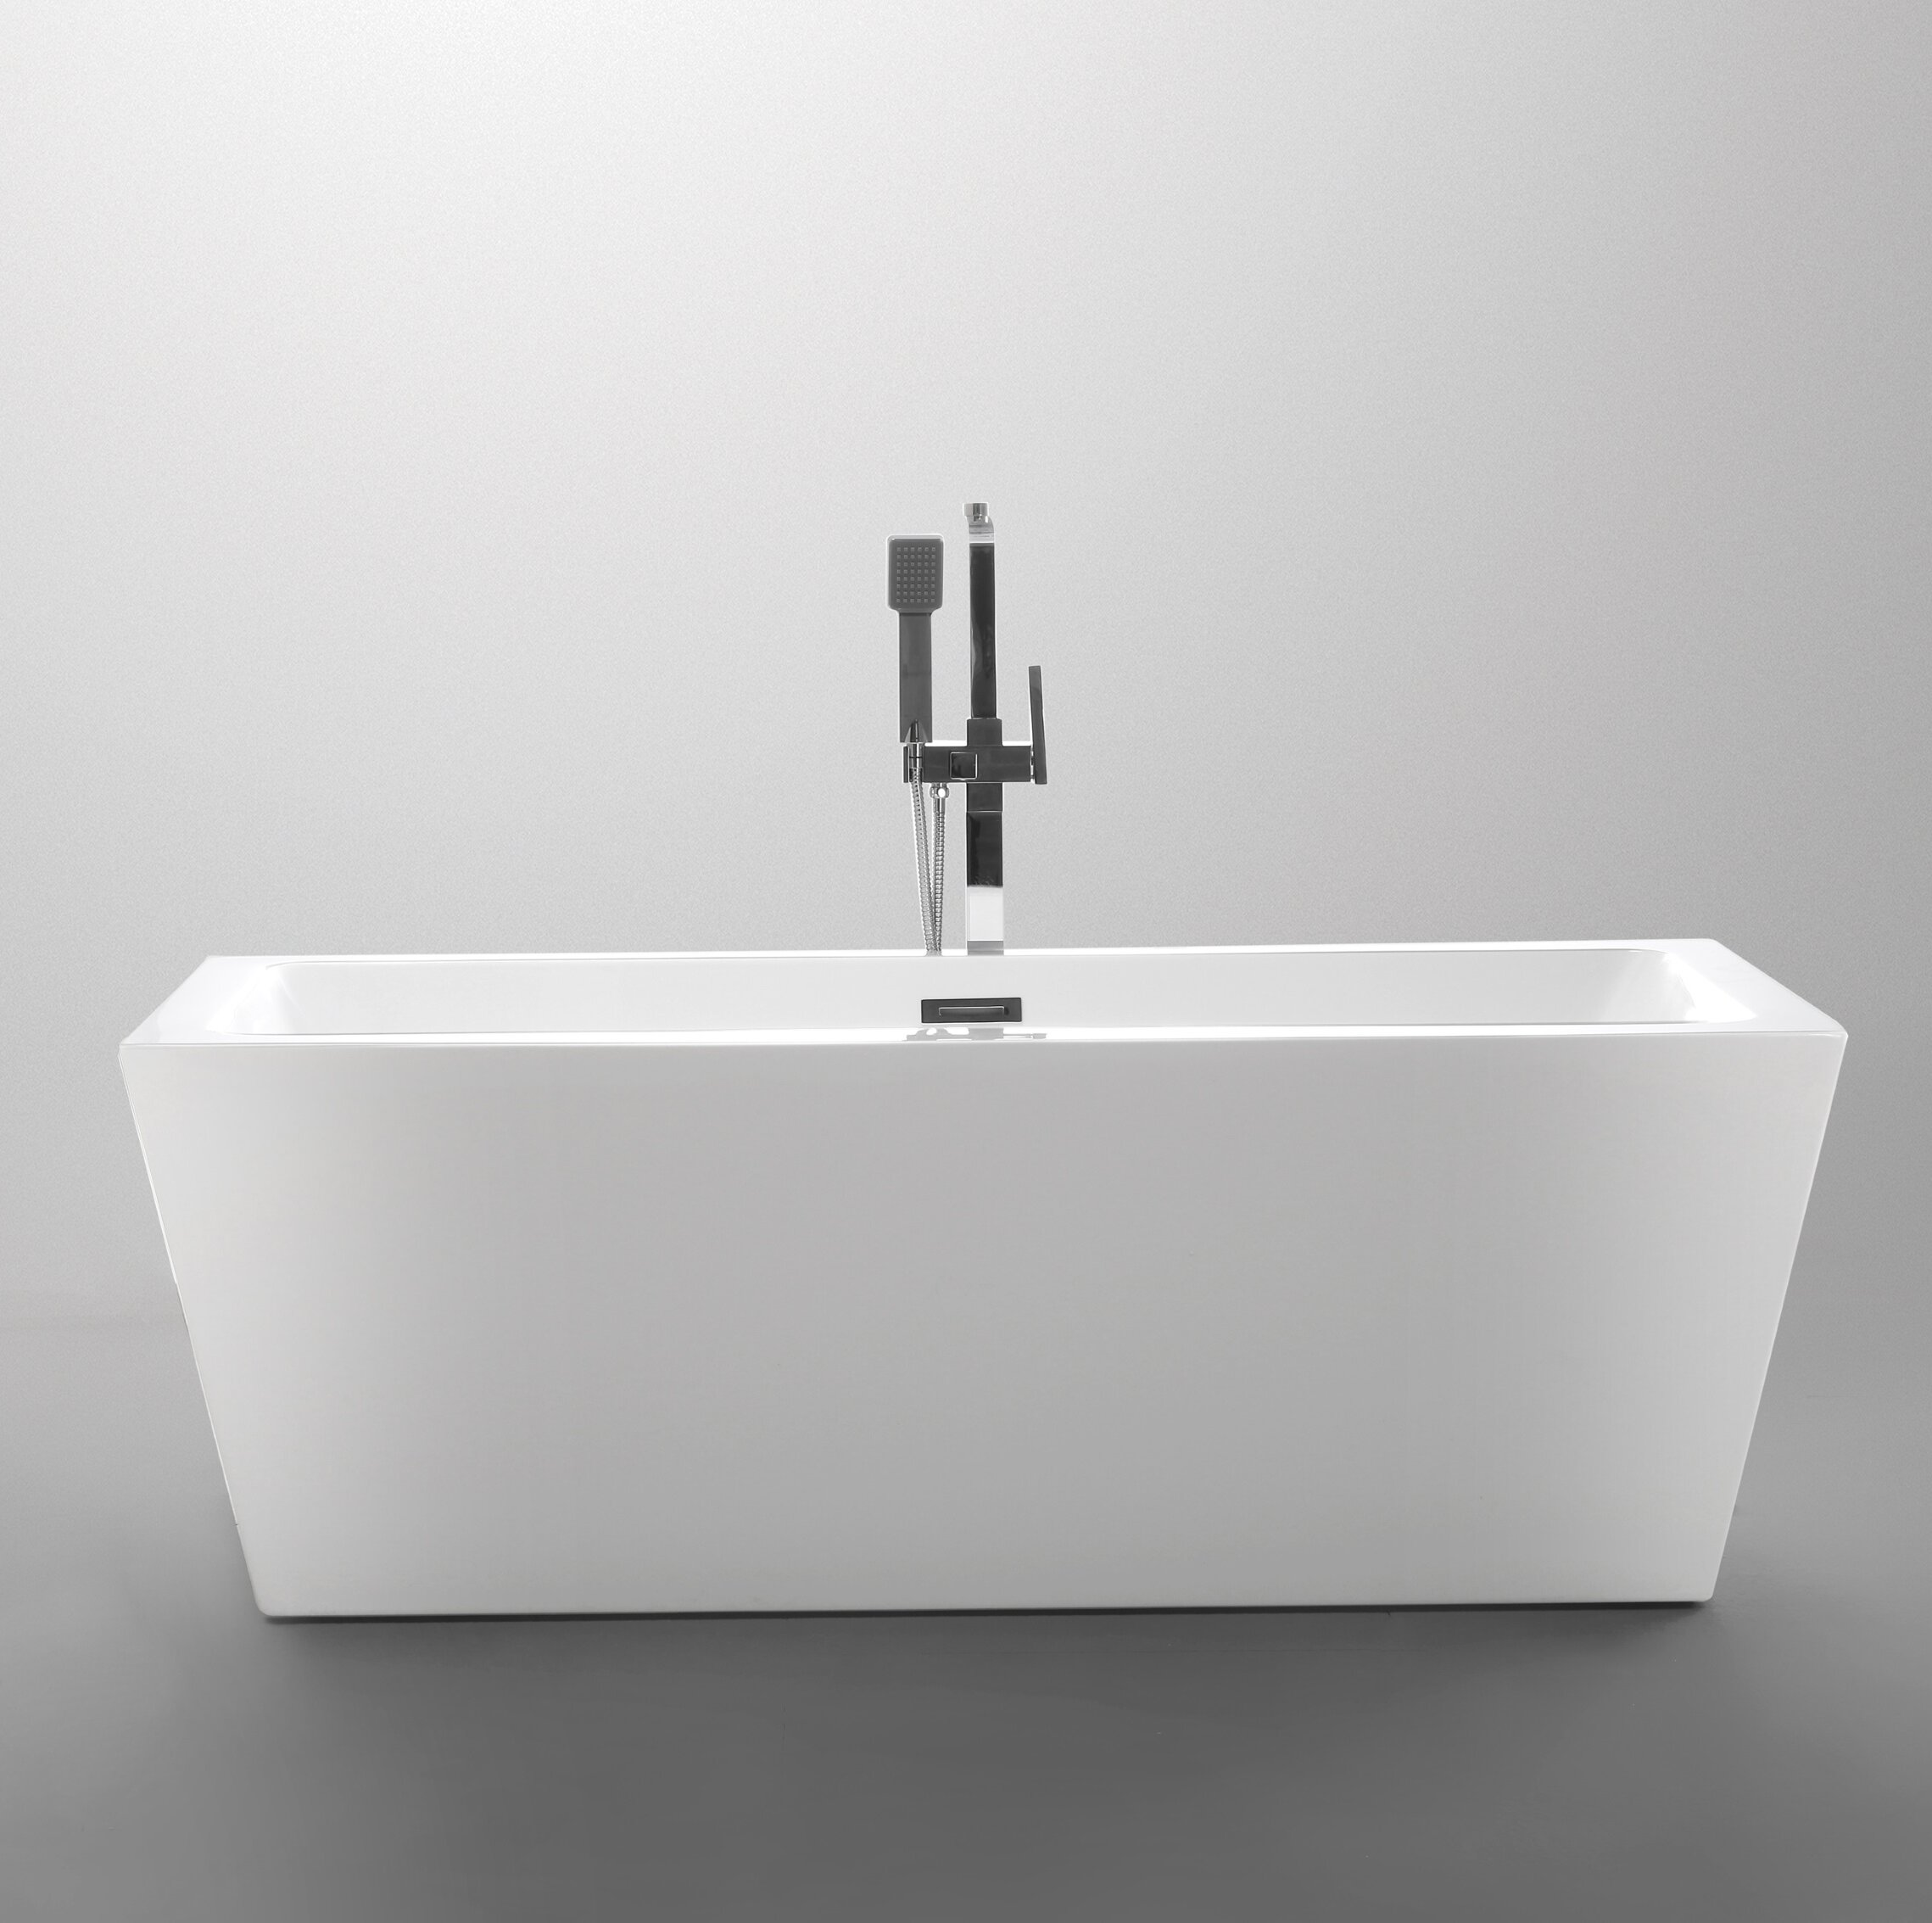 freestanding bathtub product today acrylic shipping inch home overstock soaking vanity art garden free